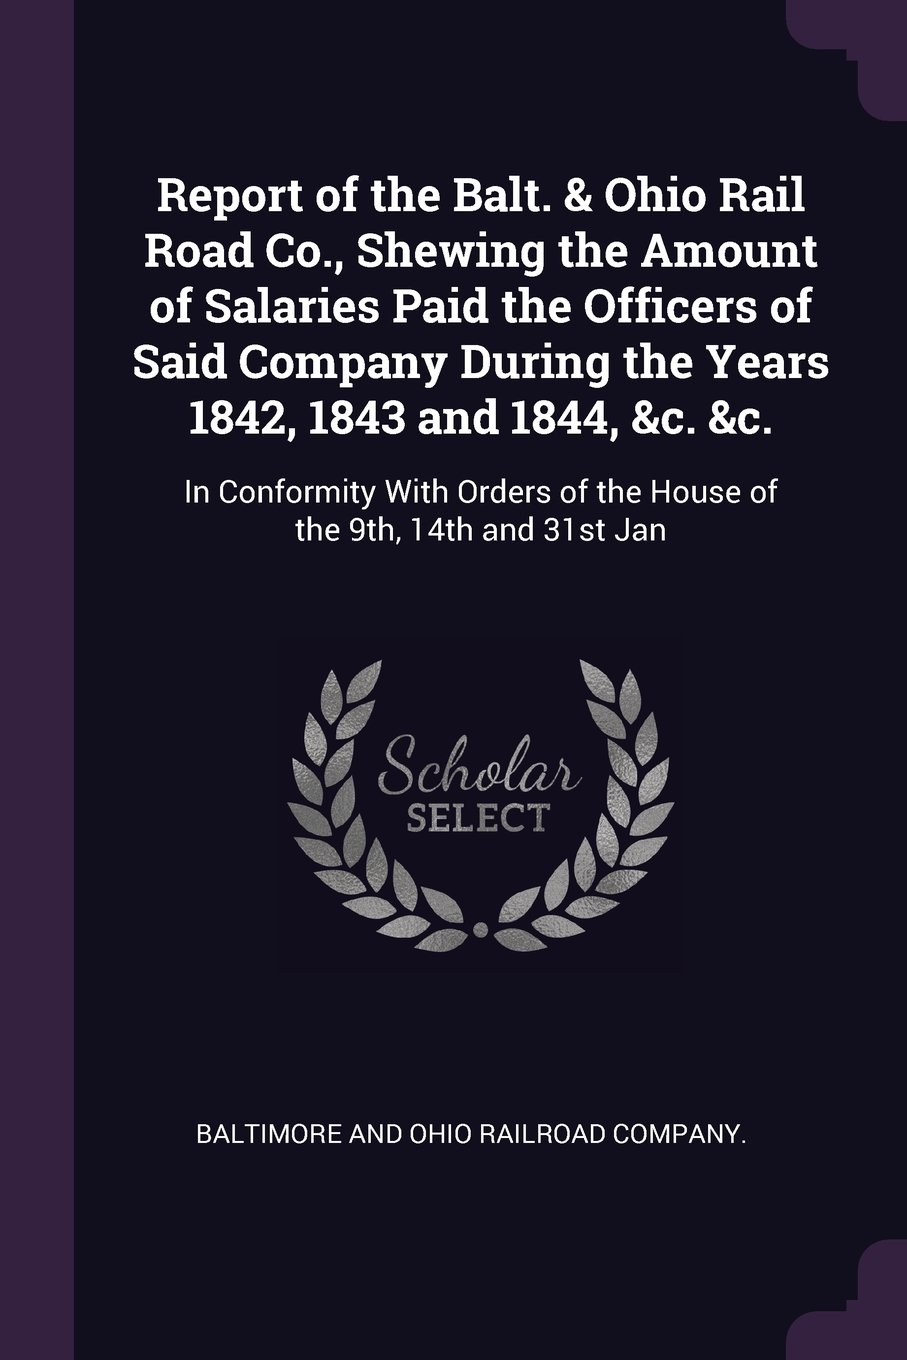 Report of the Balt. & Ohio Rail Road Co., Shewing the Amount of Salaries Paid the Officers of Said Company During the Years 1842, 1843 and 1844, &c. ... of the House of the 9th, 14th and 31st Jan pdf